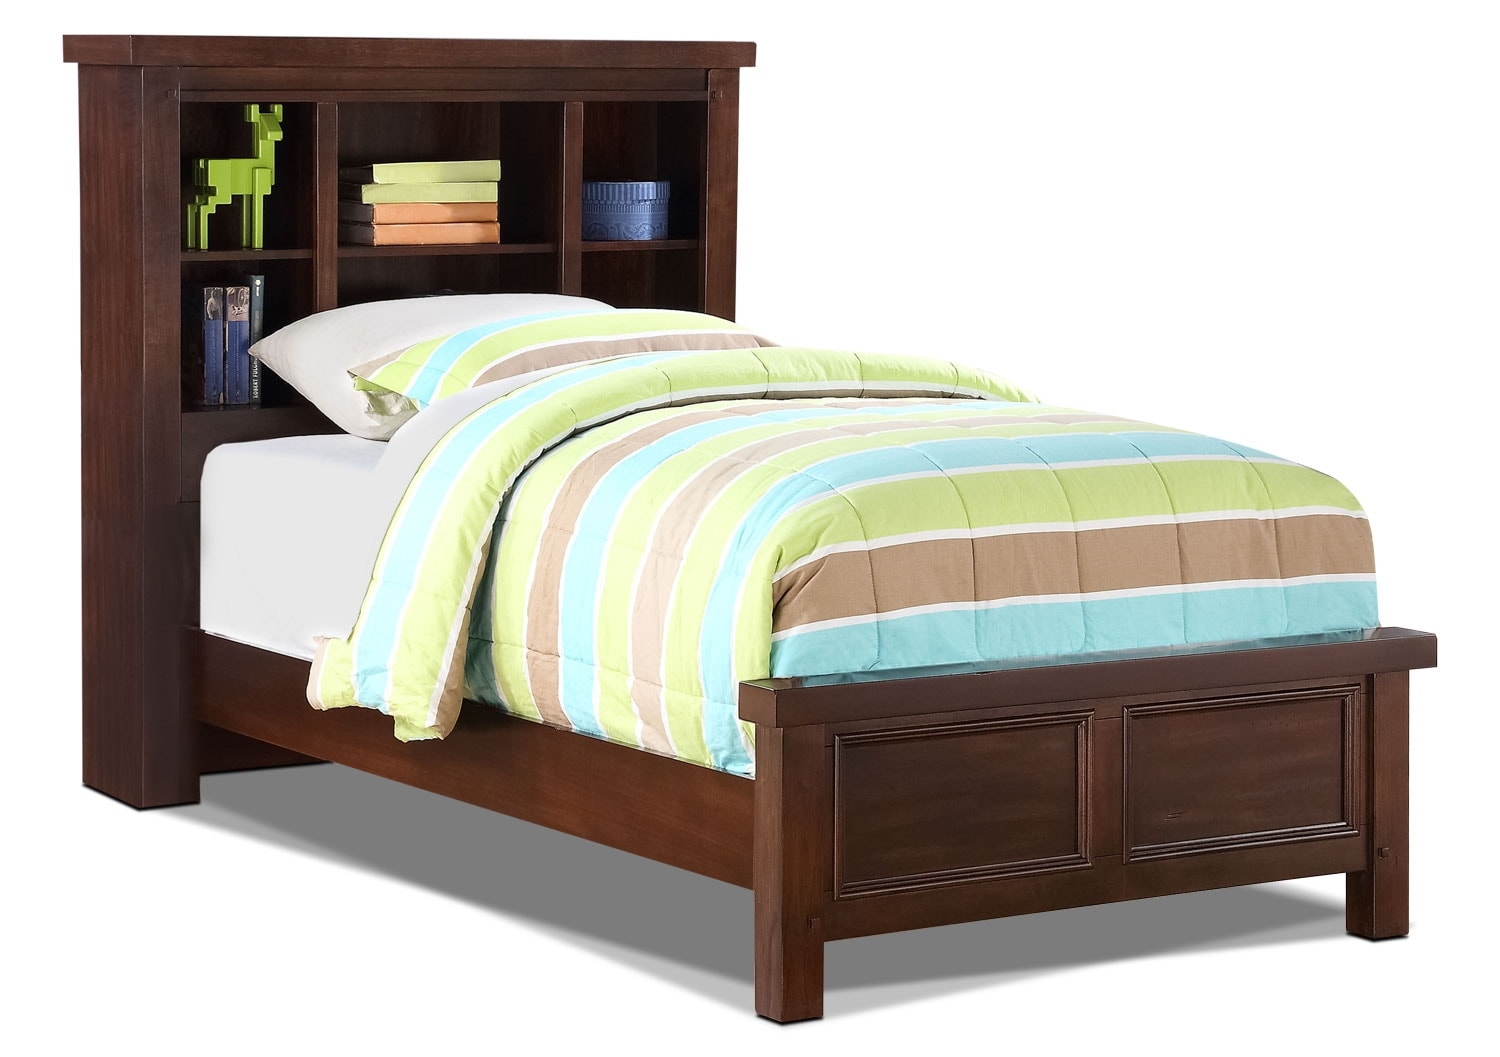 Sonoma youth twin bookcase bed united furniture warehouse for Youth furniture